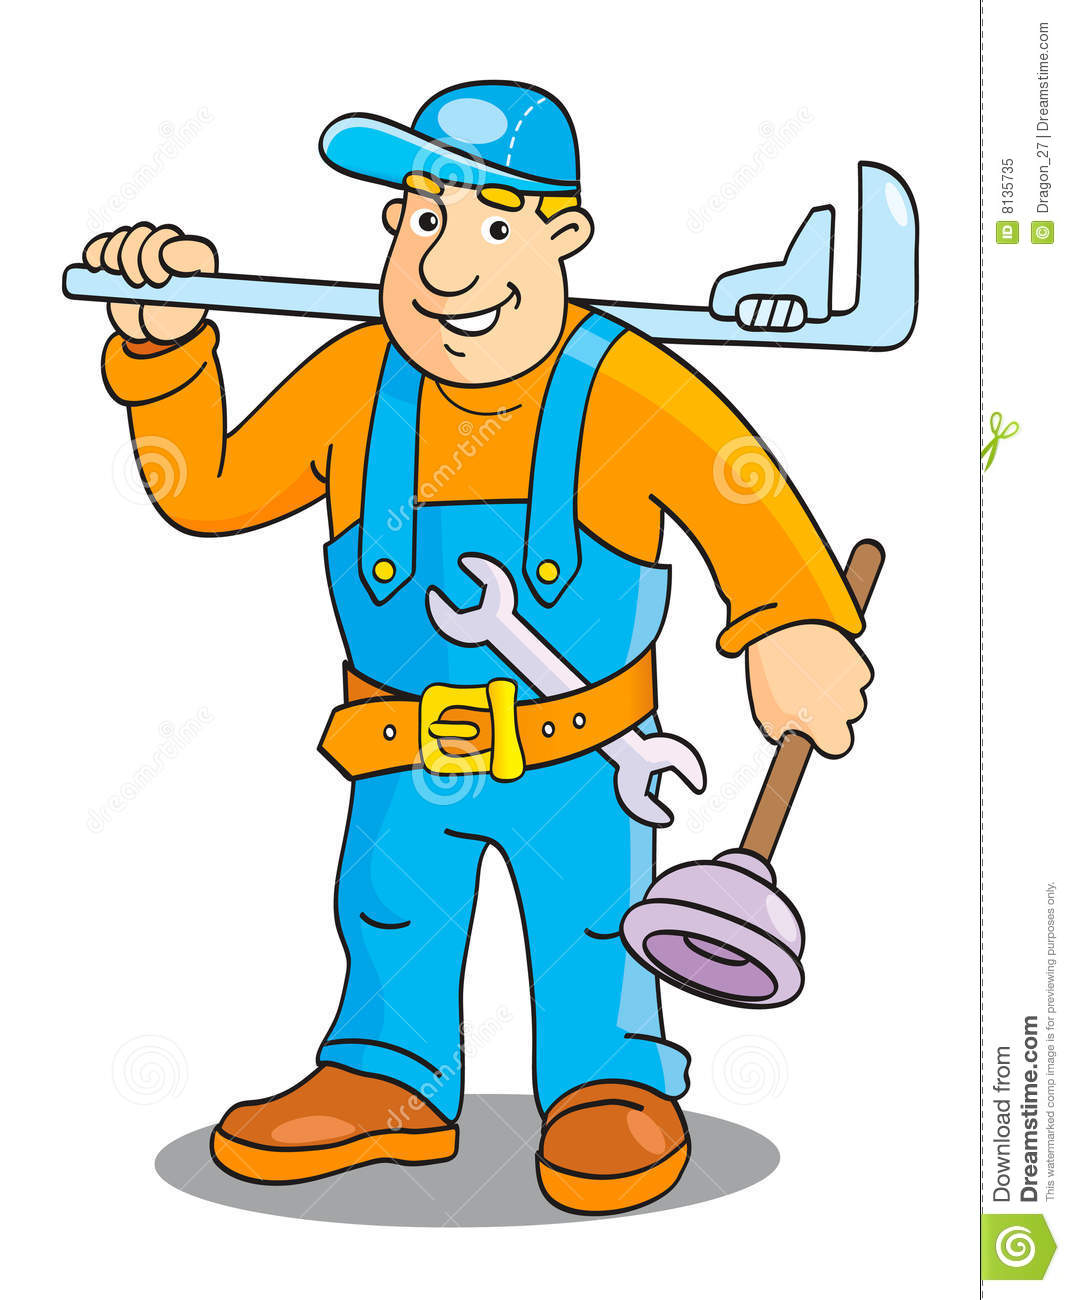 Santa Monica Plumber 2 further Royalty Free Stock Images Hot Kiss Image1679149 in addition Ms Visio Online further Mr Fix It Handyman Service together with Advertising Agency Invoice Template. on plumbing business